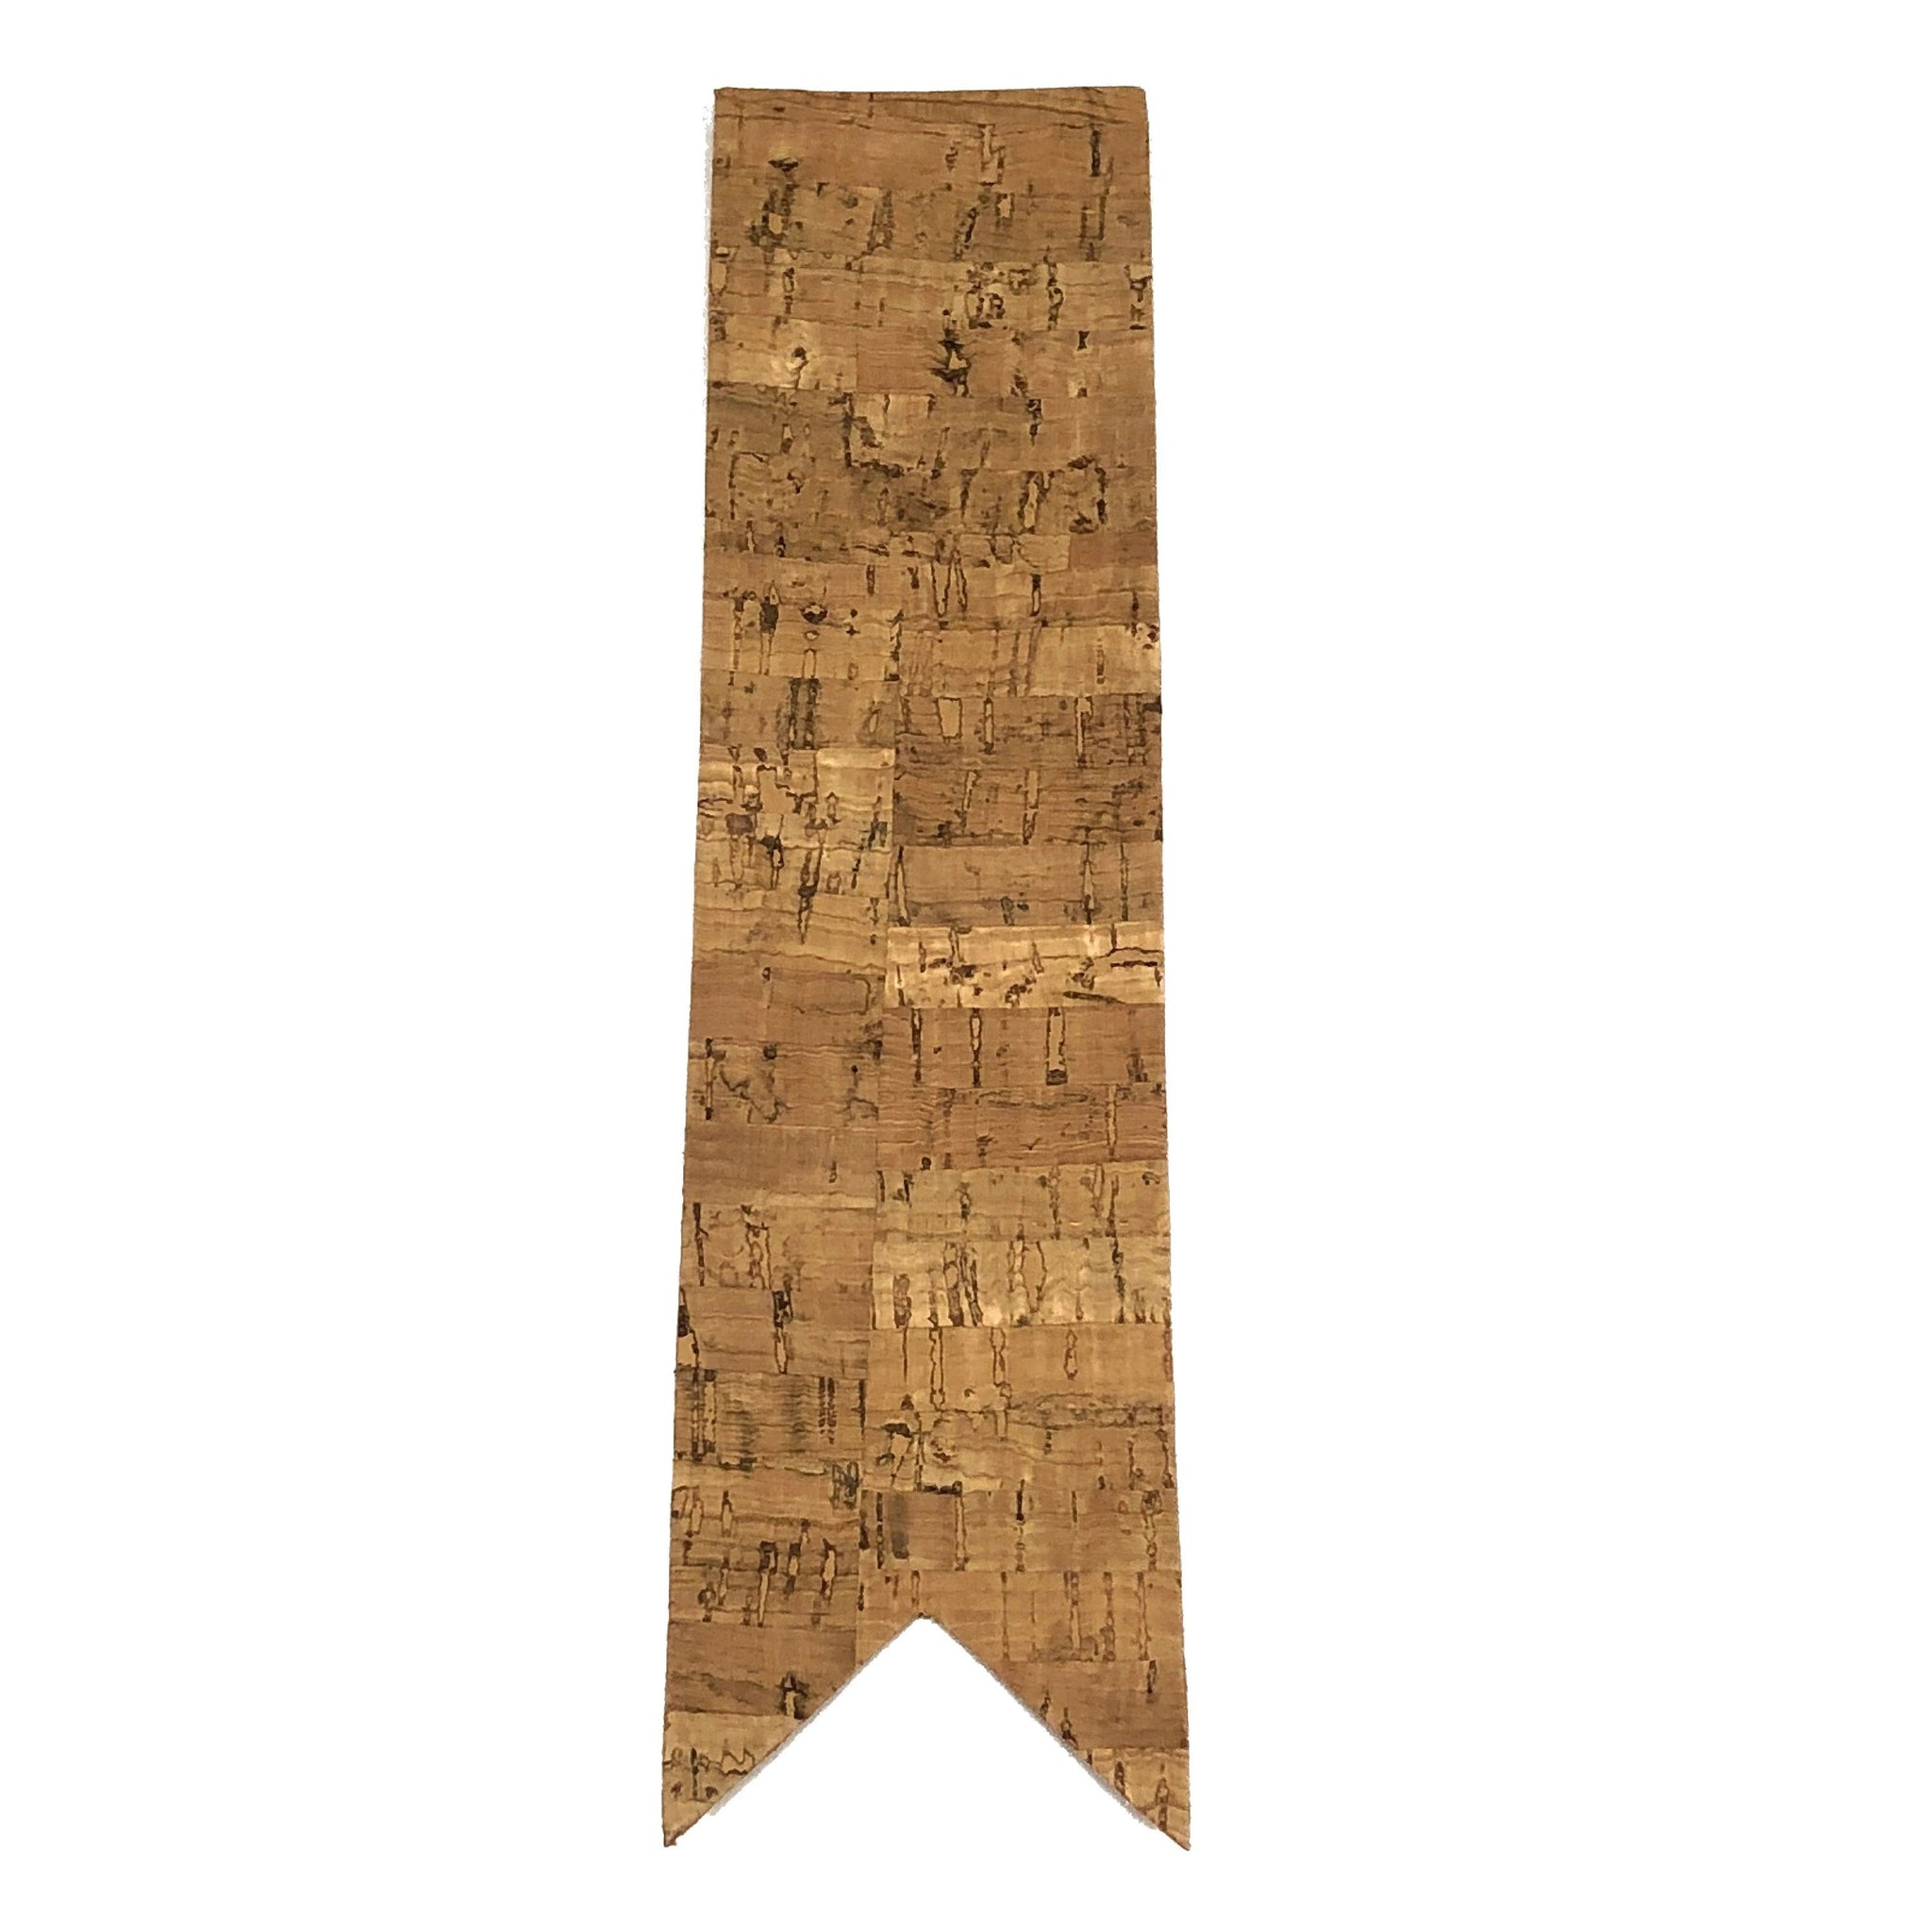 queork cork bookmark bamboo